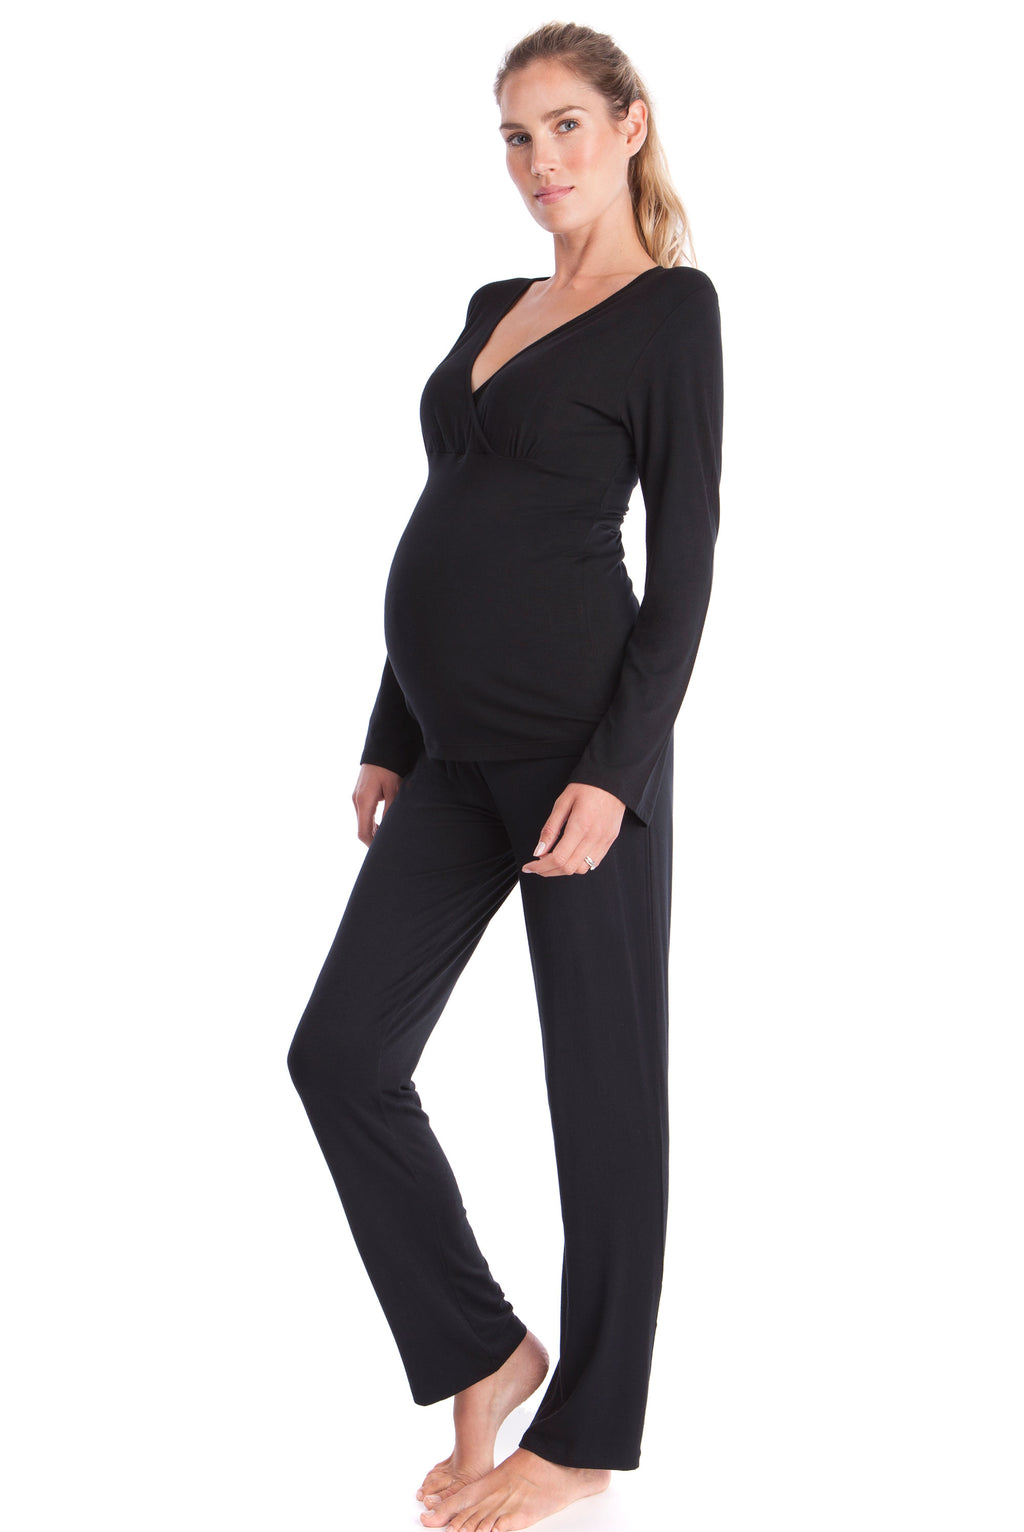 Seraphine Camille Bamboo Lounge Maternity Pajamas